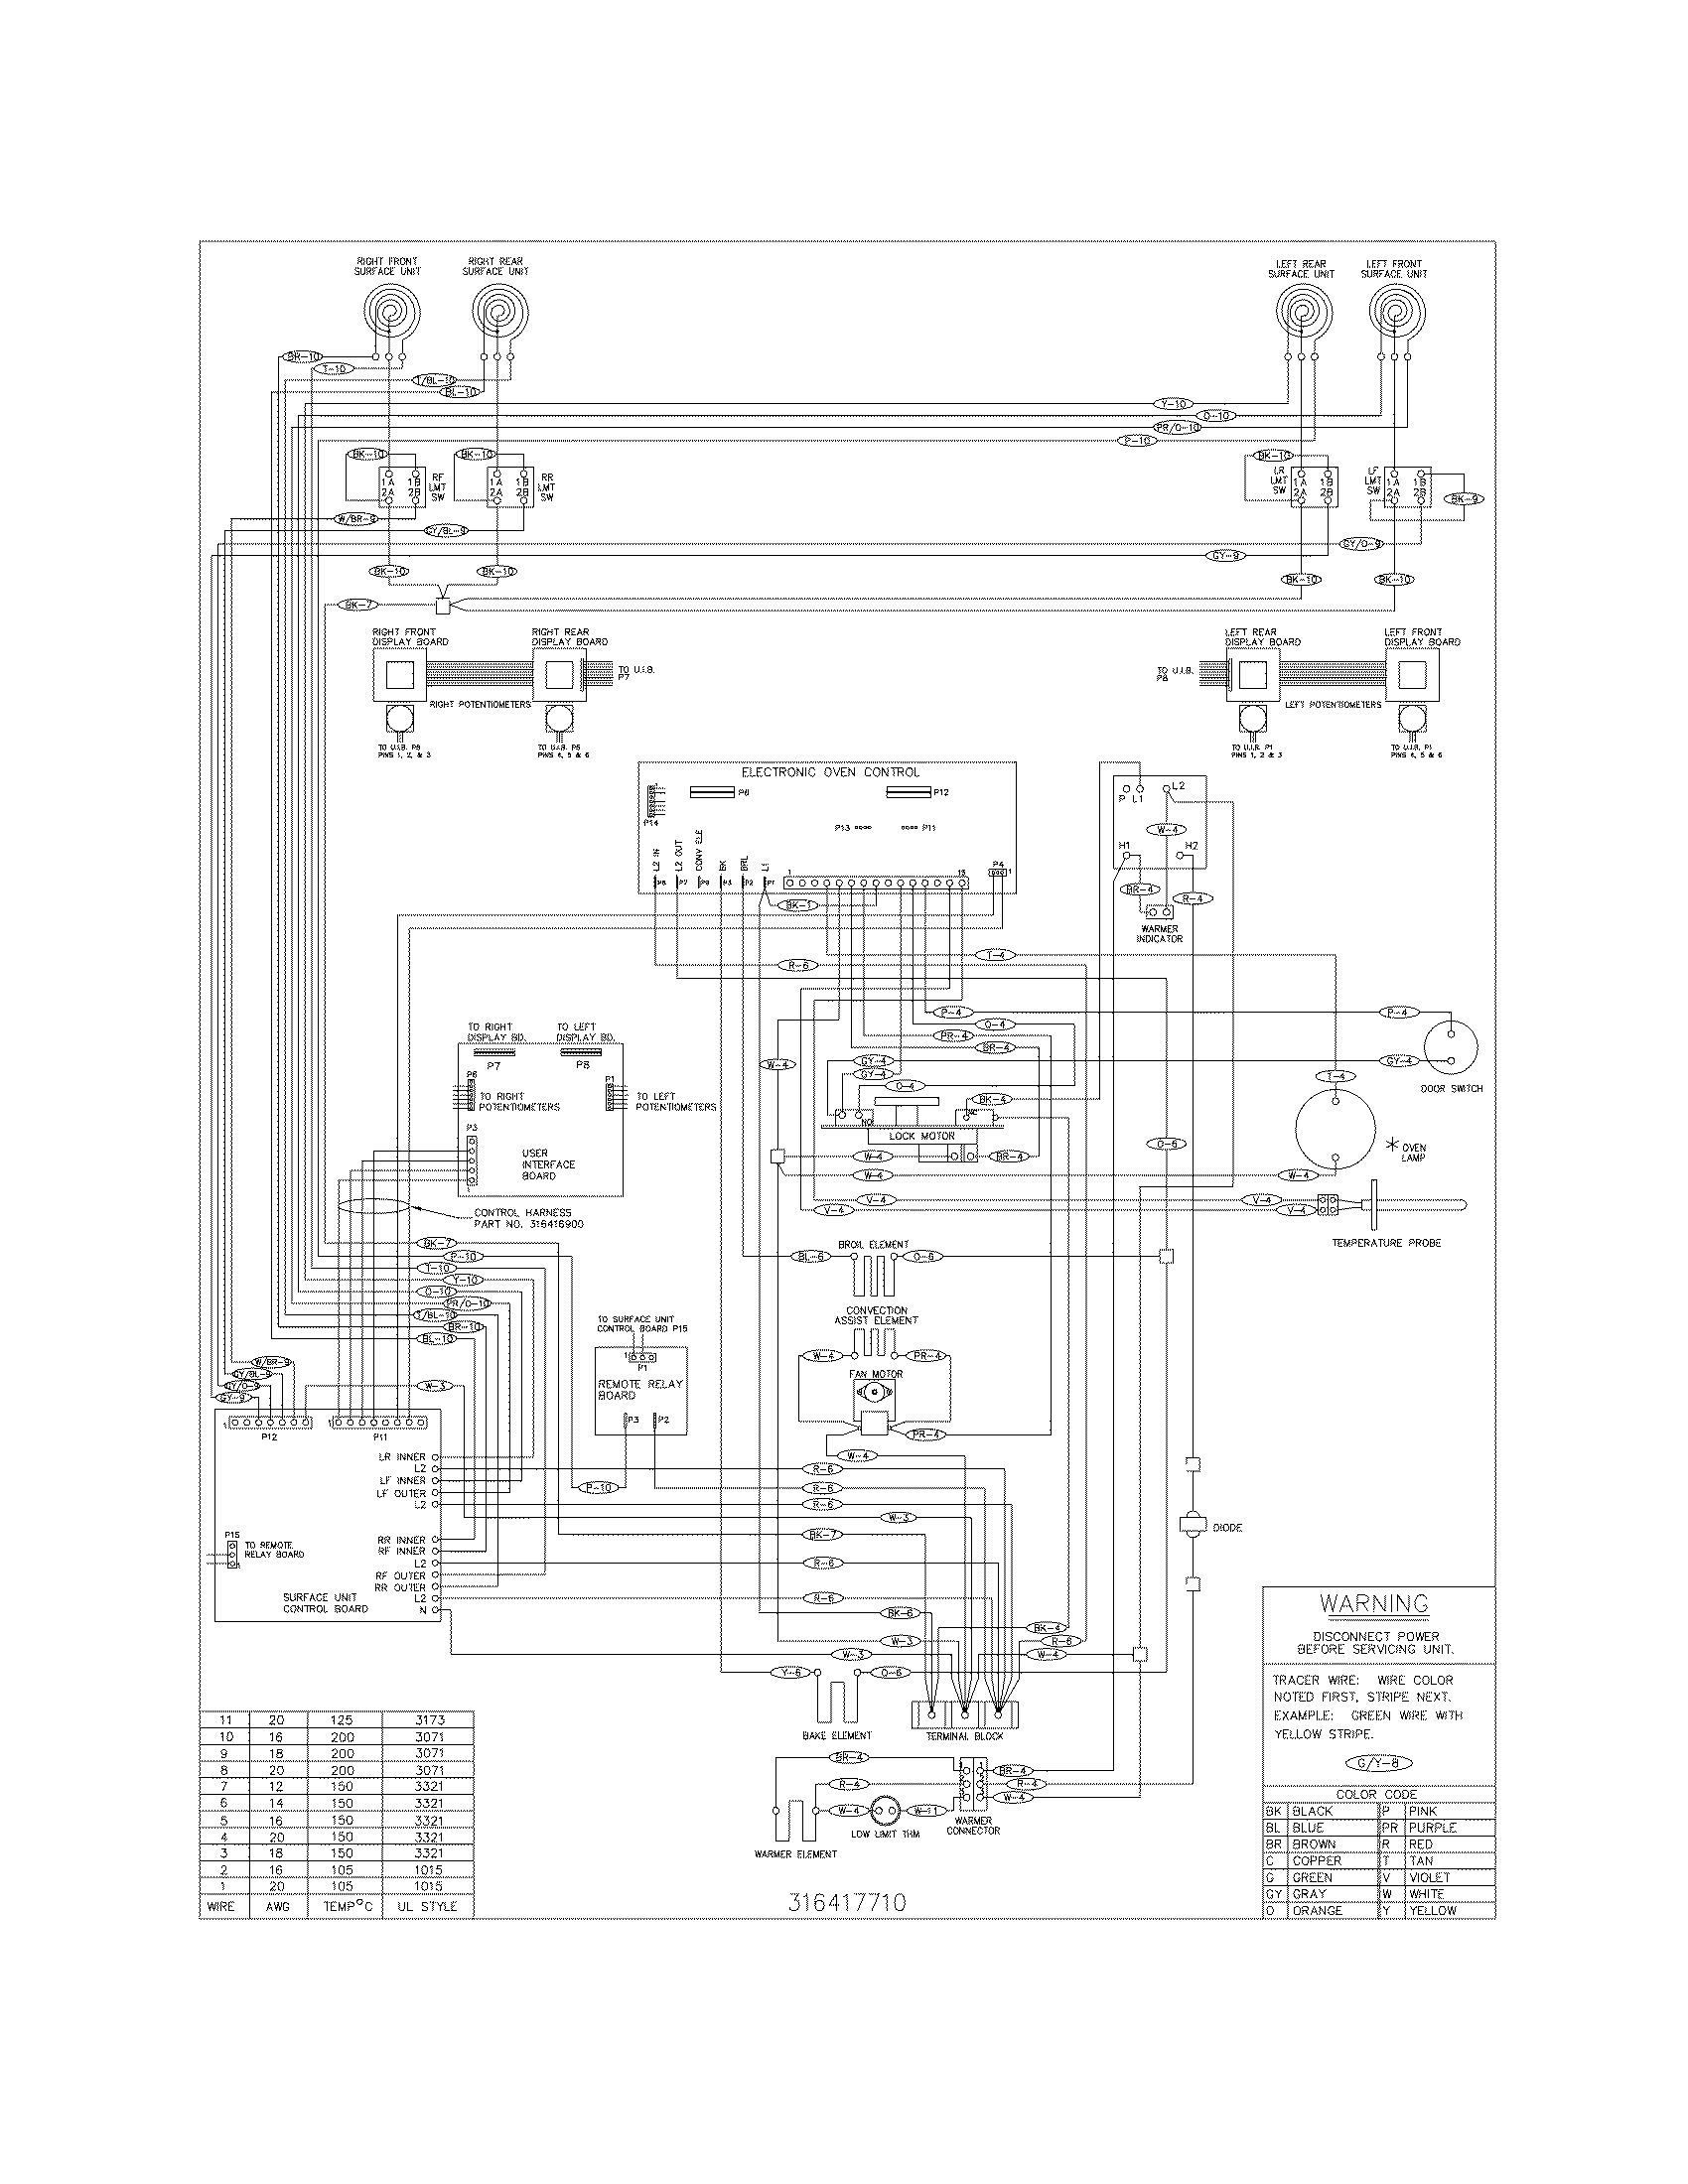 Frigidaire Electric Range Wiring Diagram